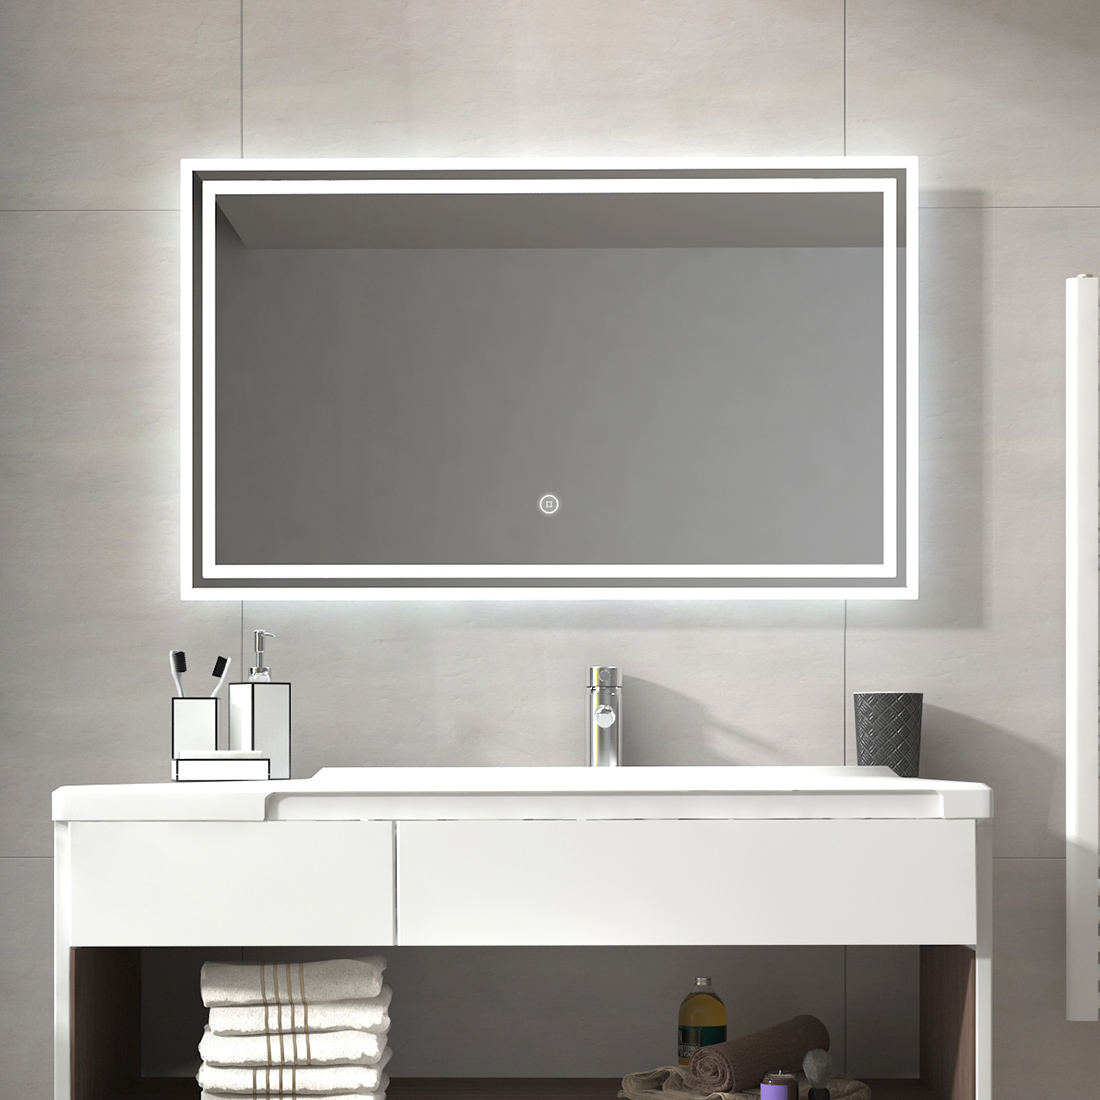 Details About Led Bathroom Lighted Mirror Illuminated Wall Touch Light Vanity Makeup 40 X24